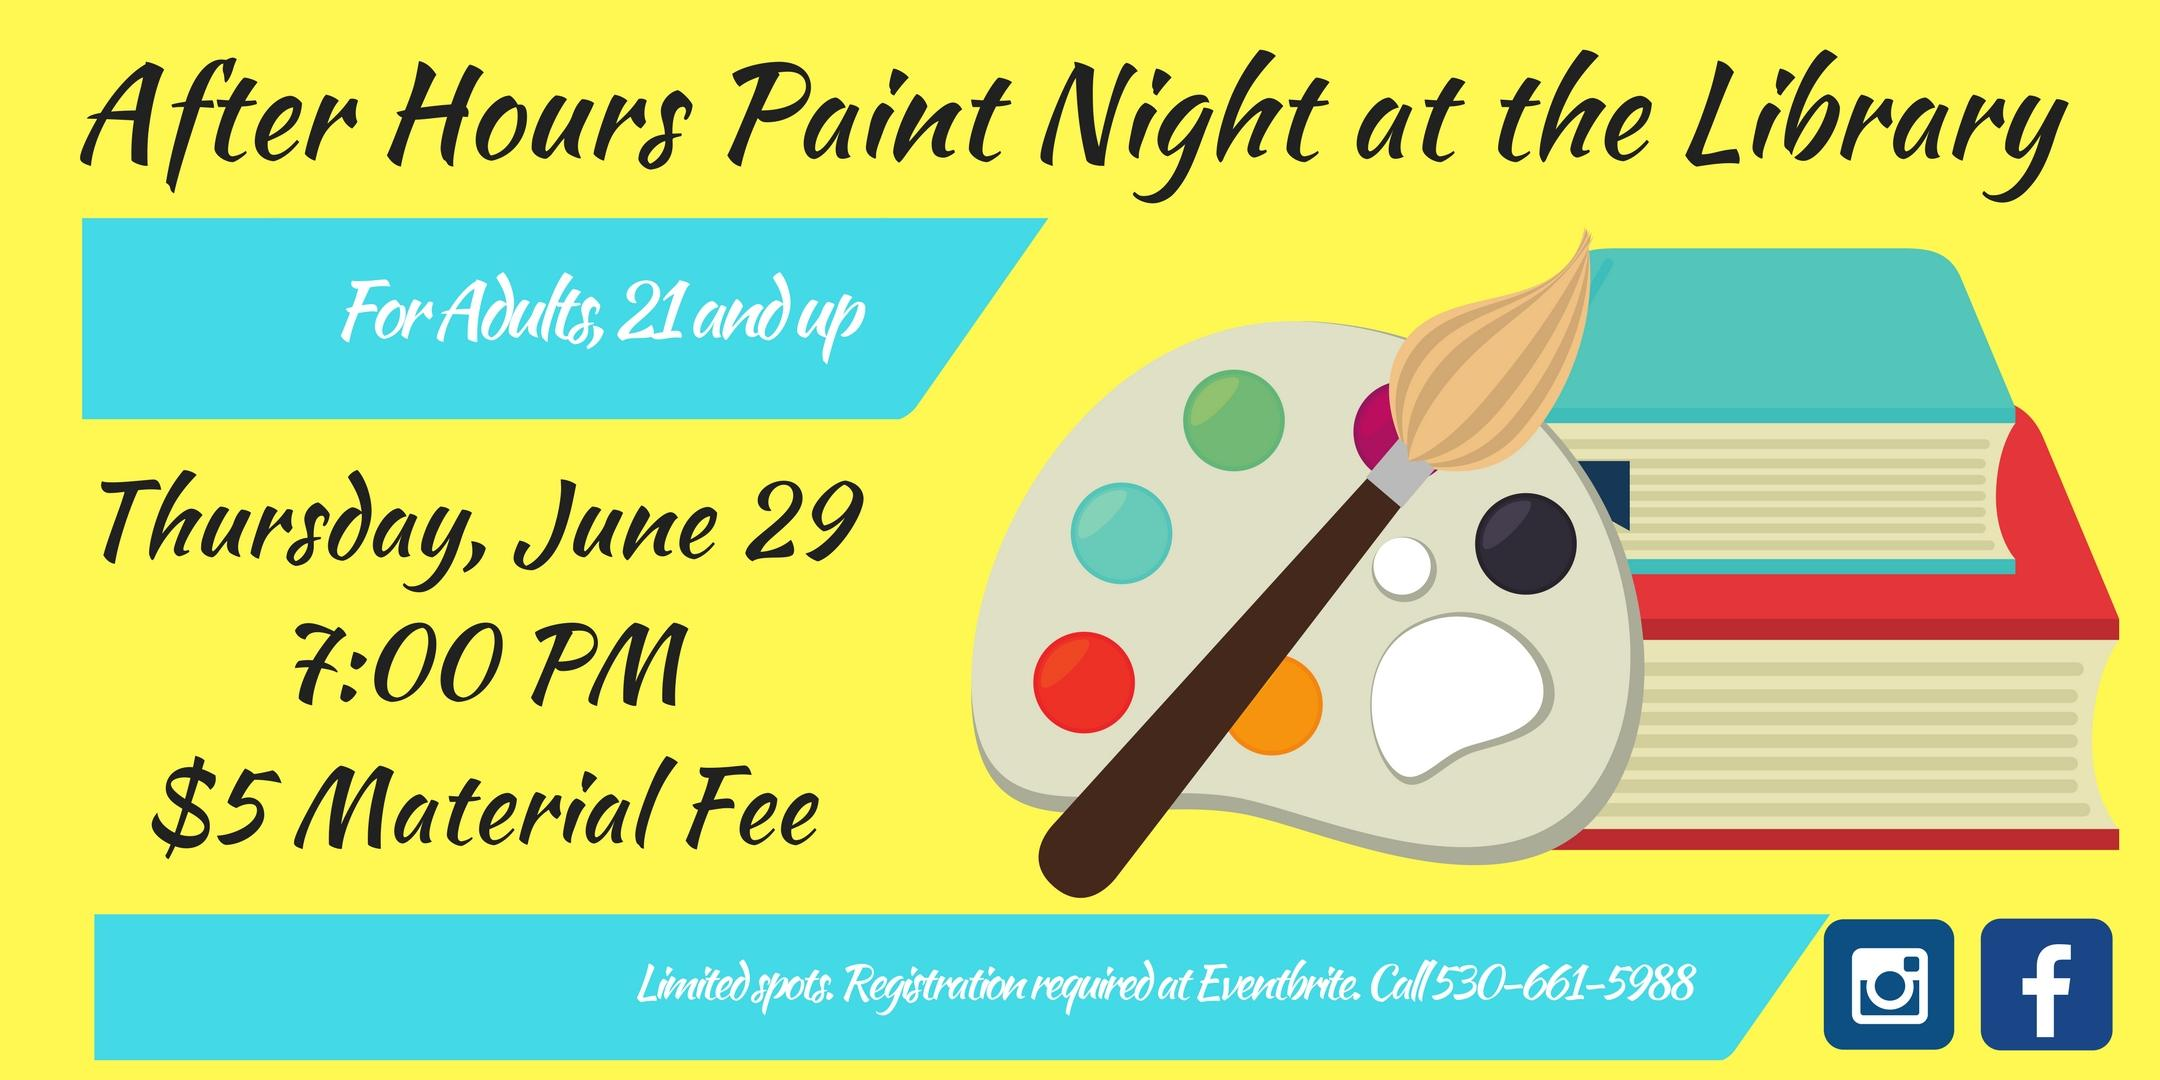 After Hours Paint Night at the Library